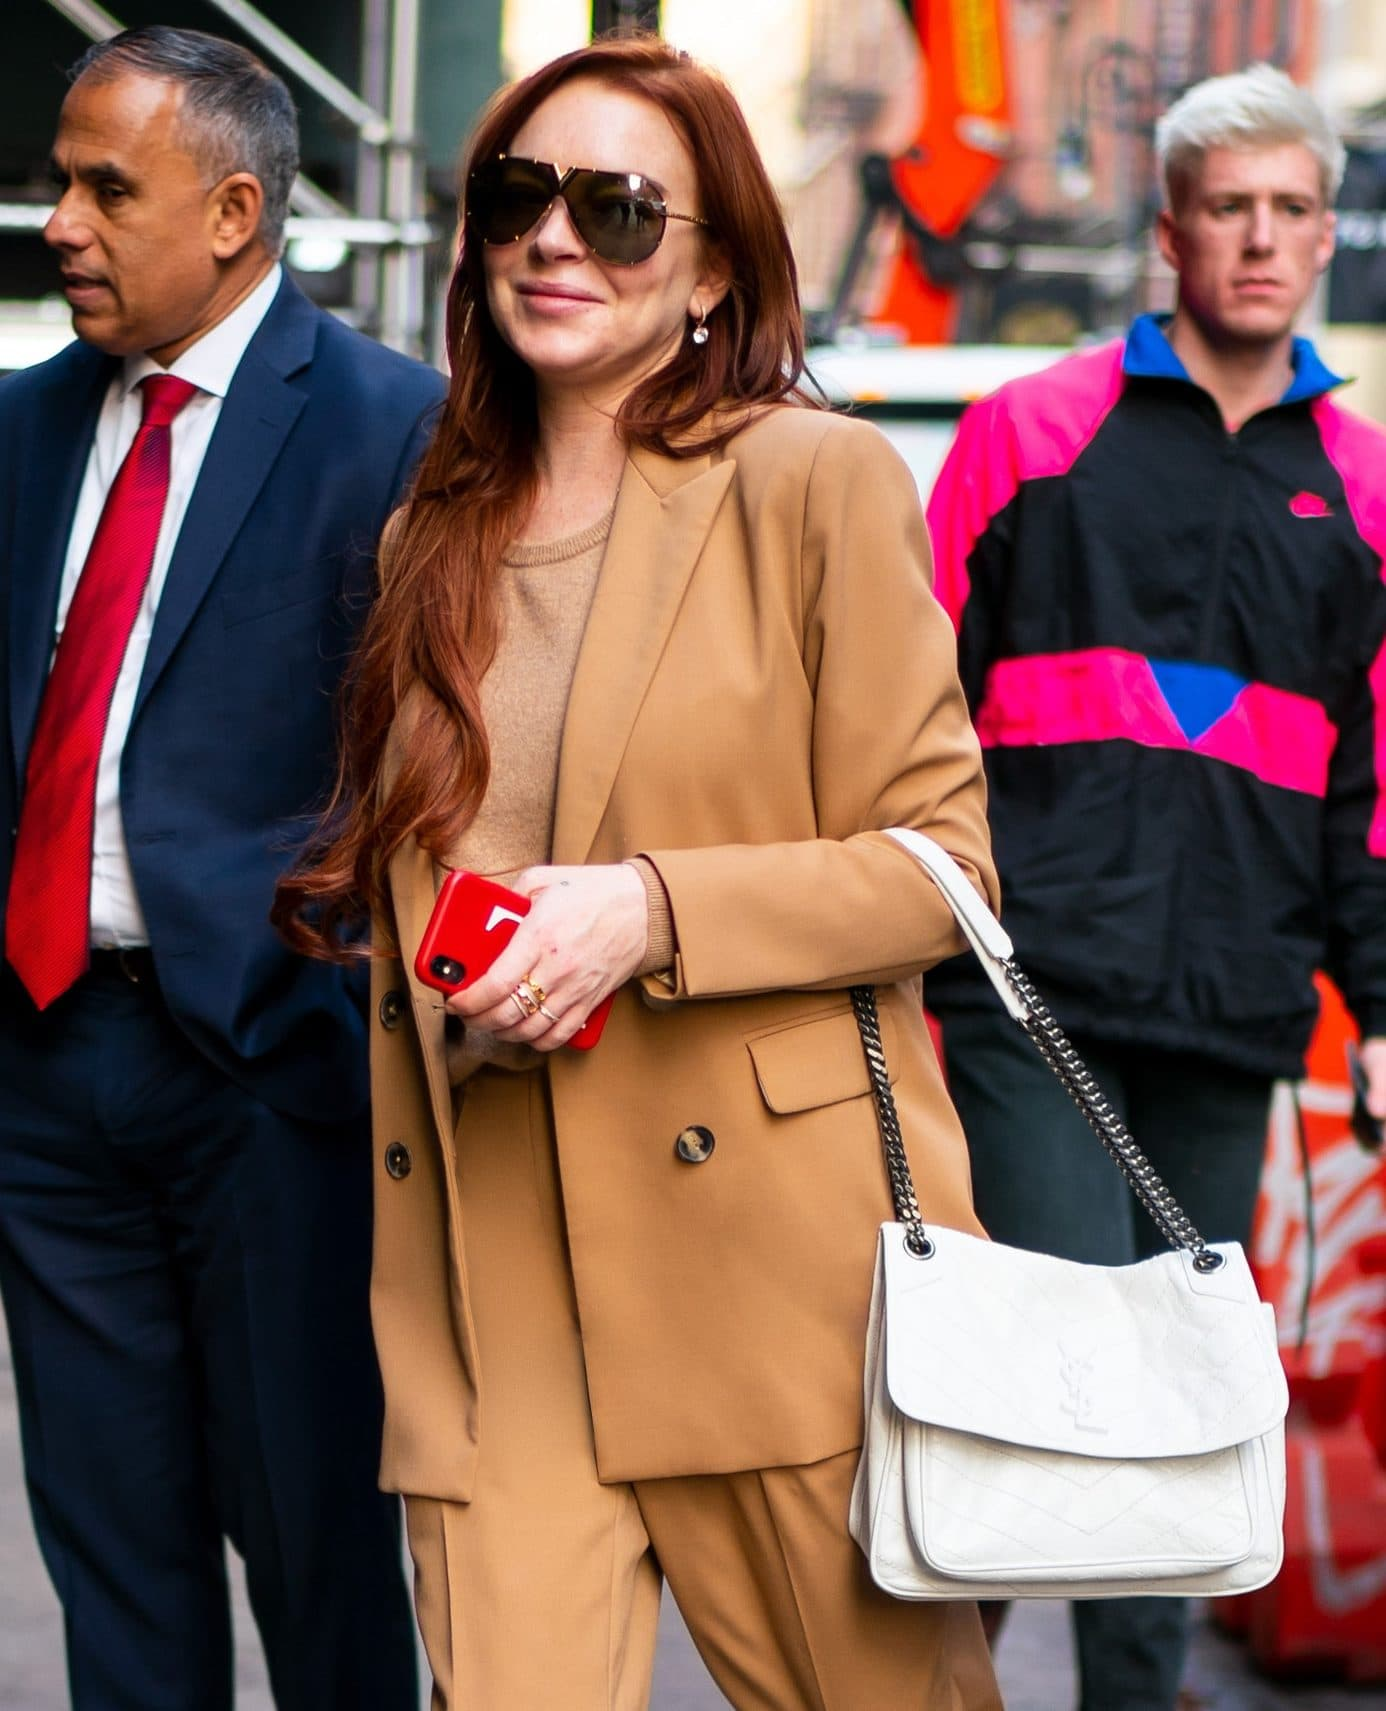 Lindsay Lohan saunters around New York City sporting the Niki bag in white leather.